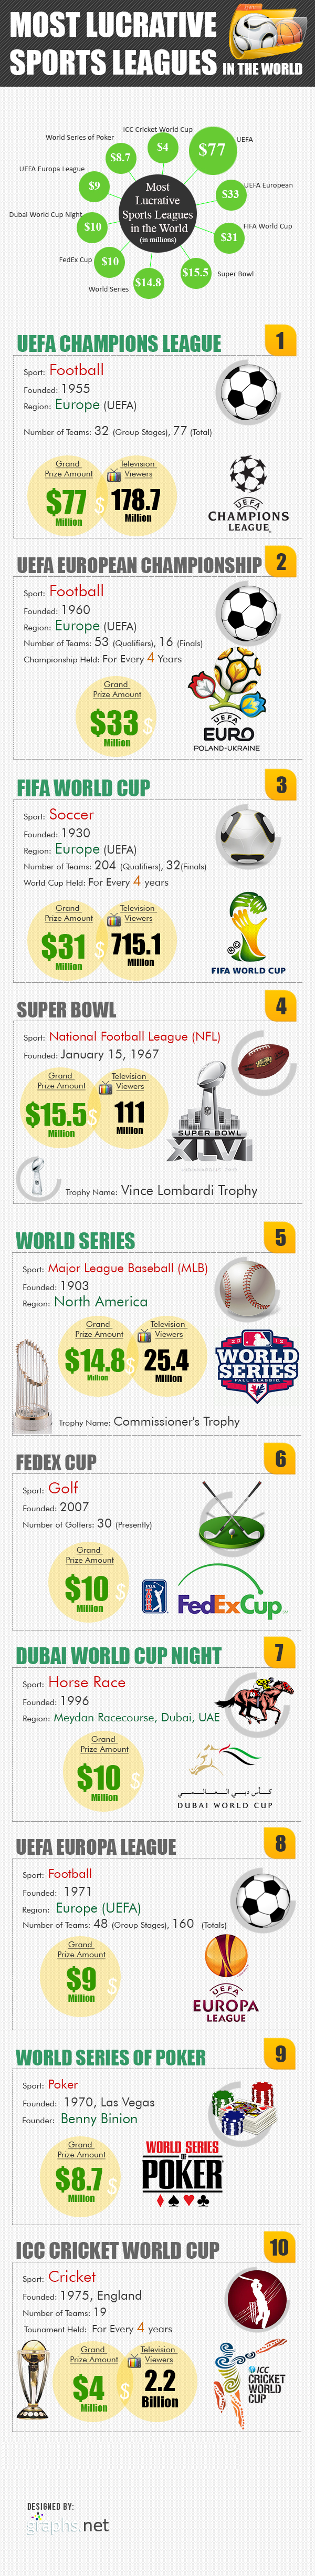 Most Lucrative Sports Leagues in the World